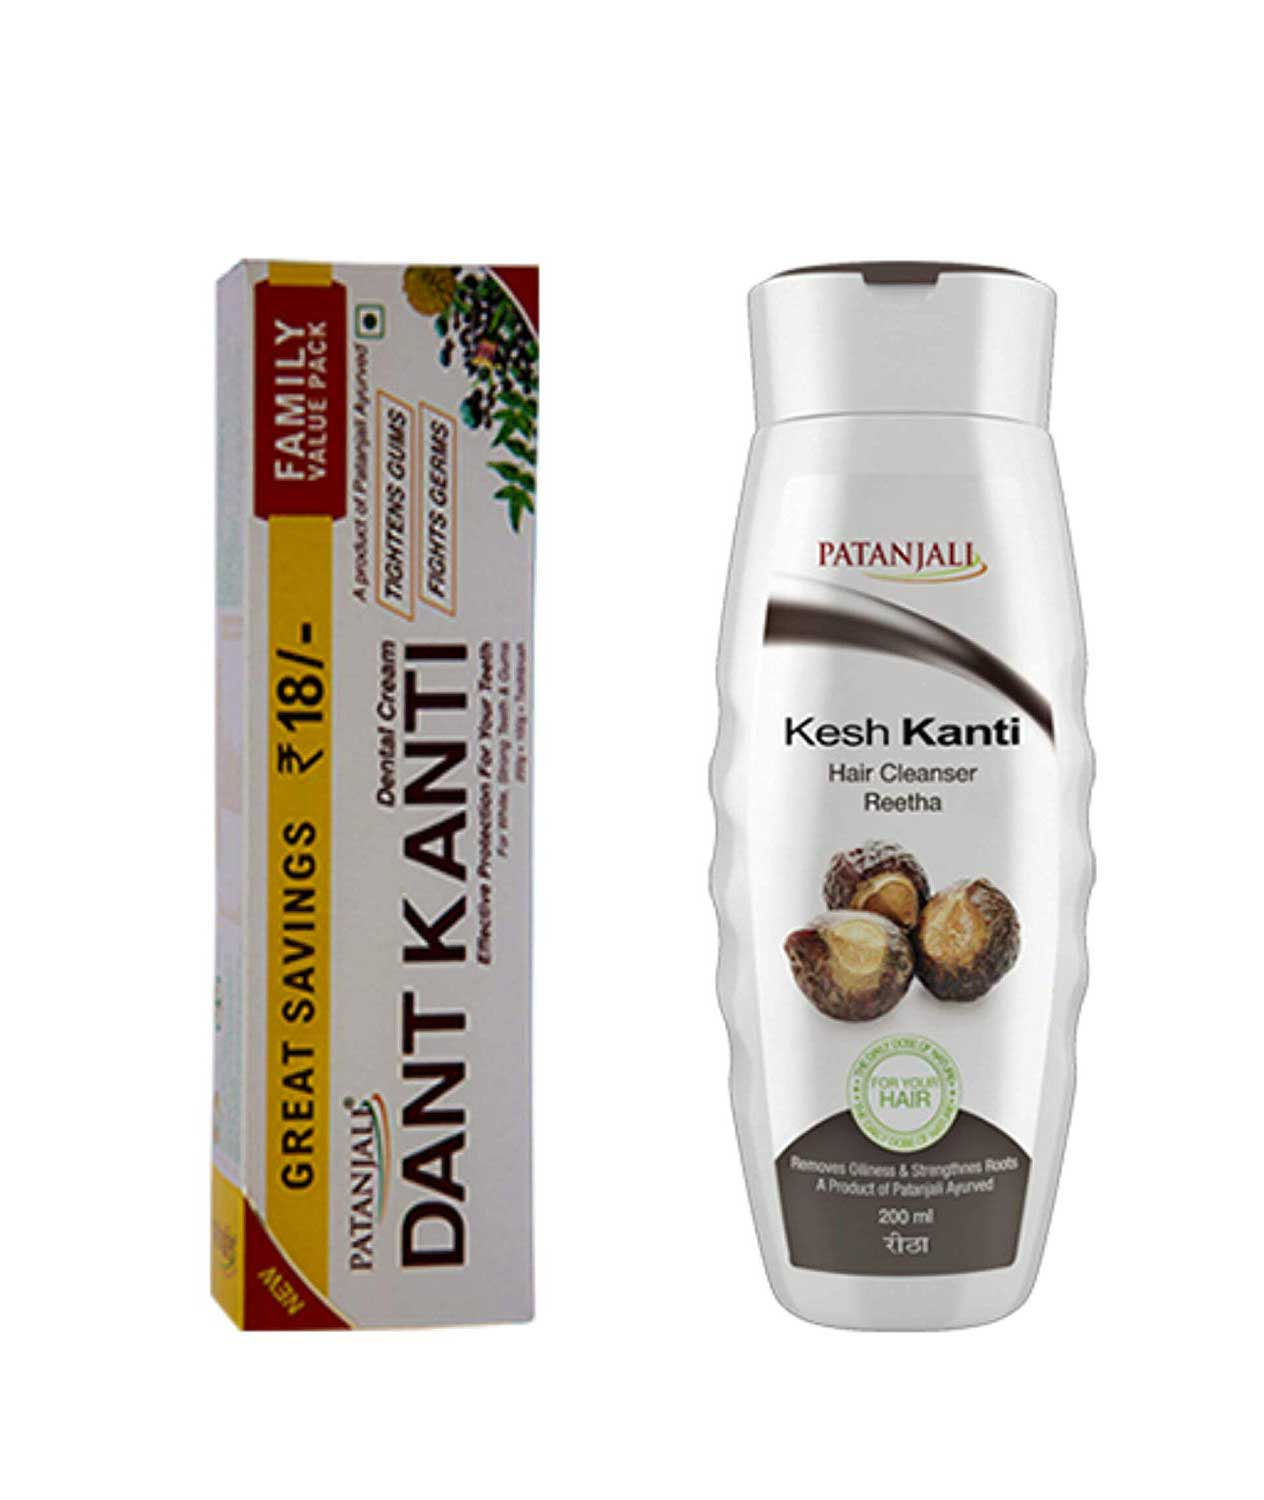 VADMANS Dantkanti Natural Toothpaste Family Pack(200+100g paste +75g soap) & Reetha Shampoo 200ml (Removes Oiliness & Strengthens Roots)